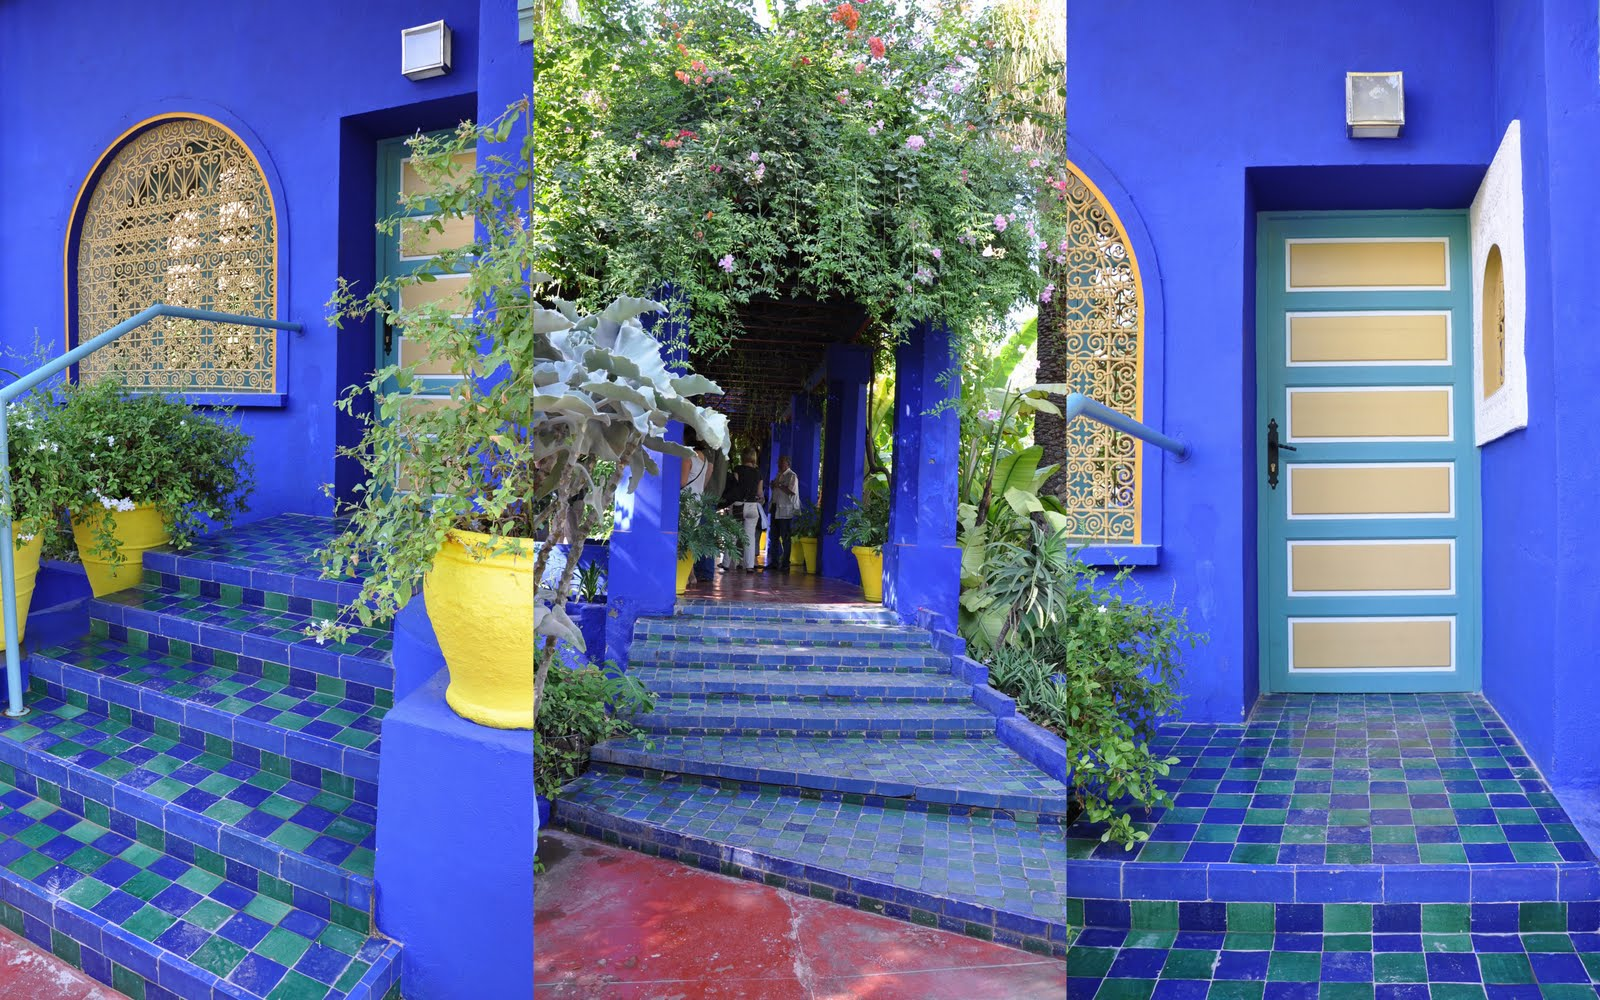 The olive journey jardin majorelle marakech morocco for Jardin marrakech